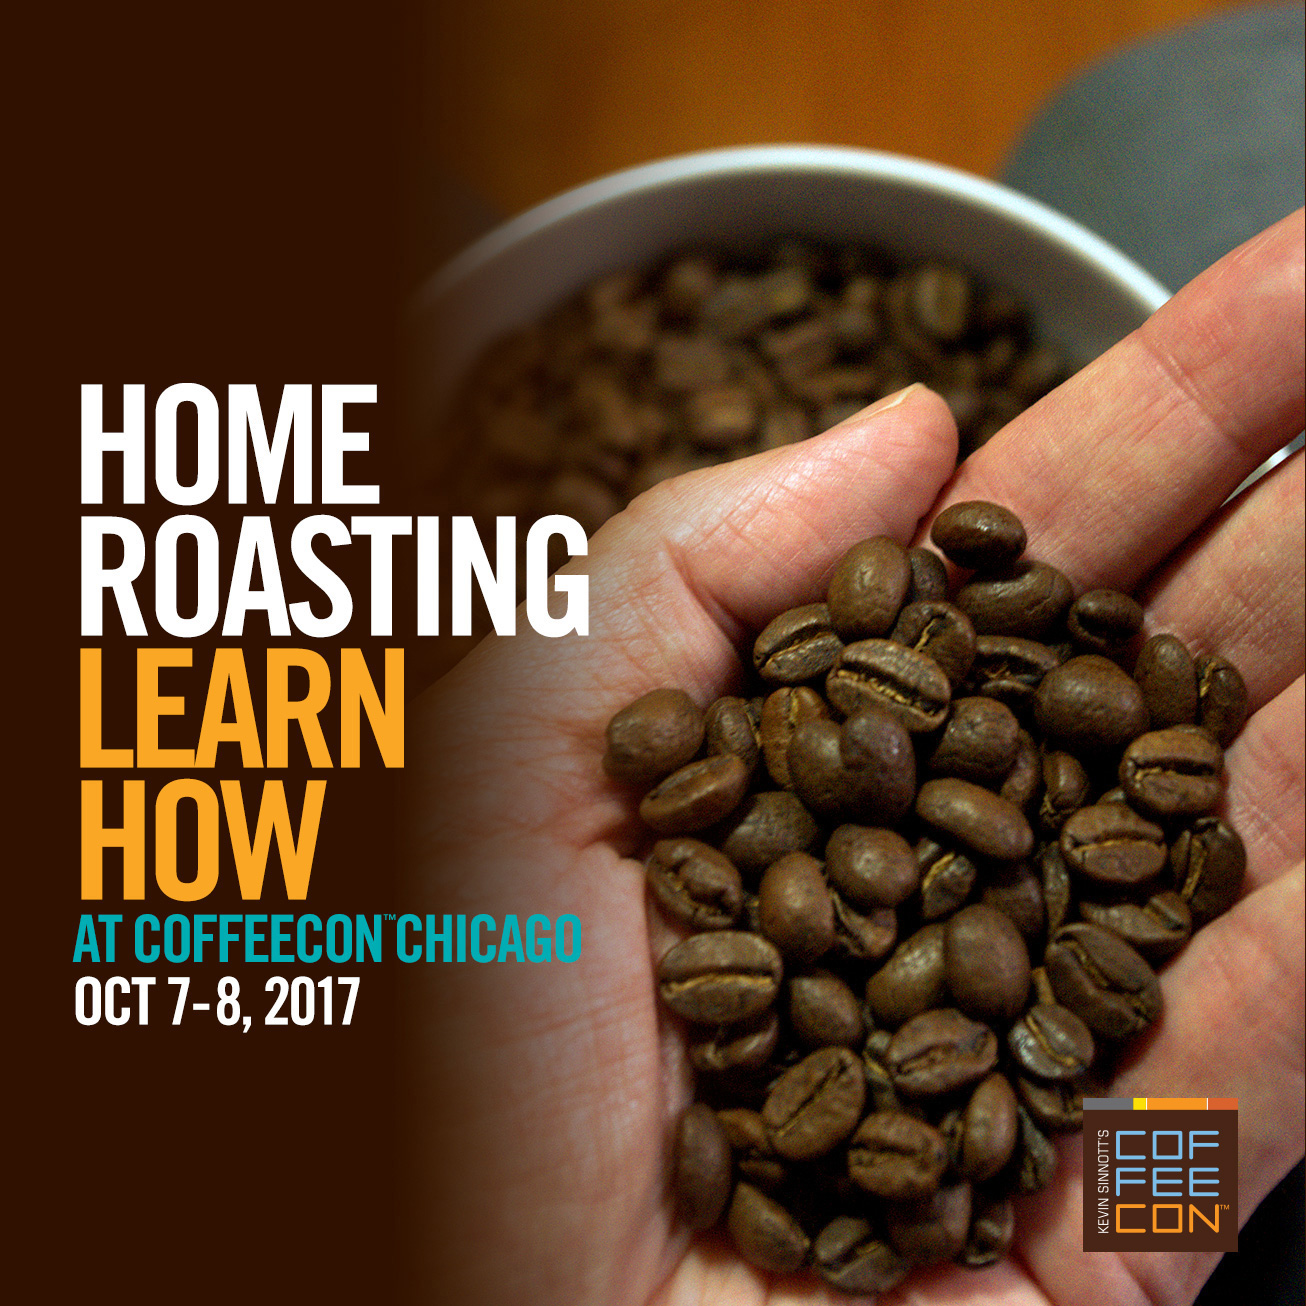 Home Roasting Coffee at CoffeeCon Chicago